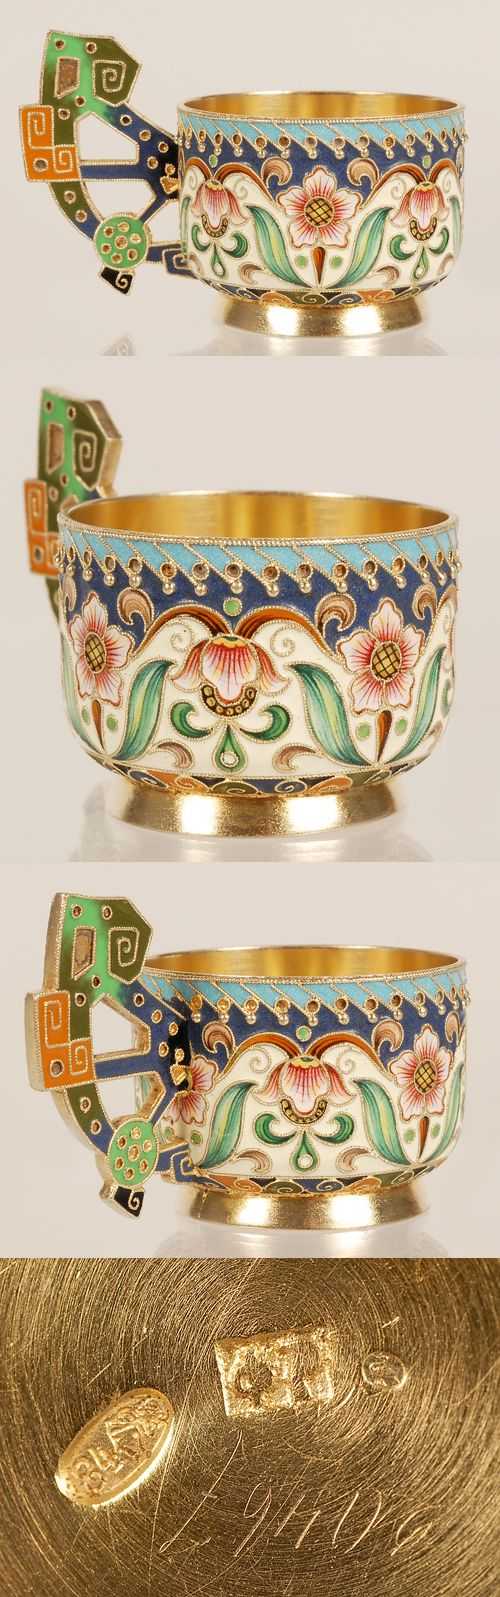 A Russian silver gilt and shaded cloisonne enamel caska, Feodor Ruckert, Moscow, 1896-1908. The cylindrical body on a raised flaring base decorated in a stylized multi-color scrolling floliate motif against a cream enamel ground, the pierced pan-Slavic handle similarly worked